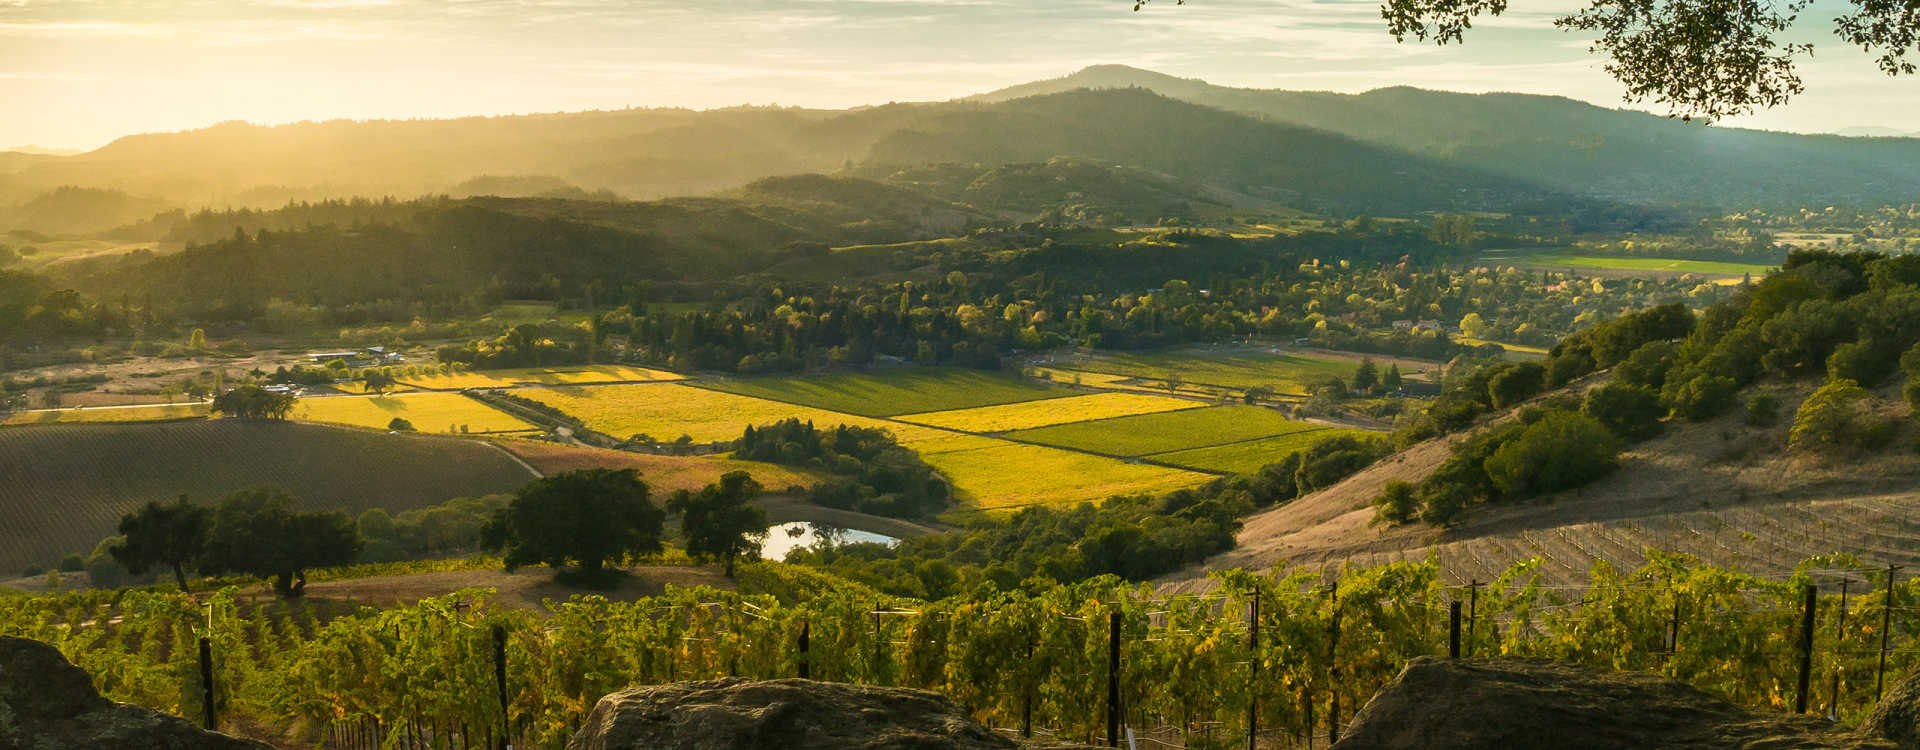 Image for Sonoma Mountain content section